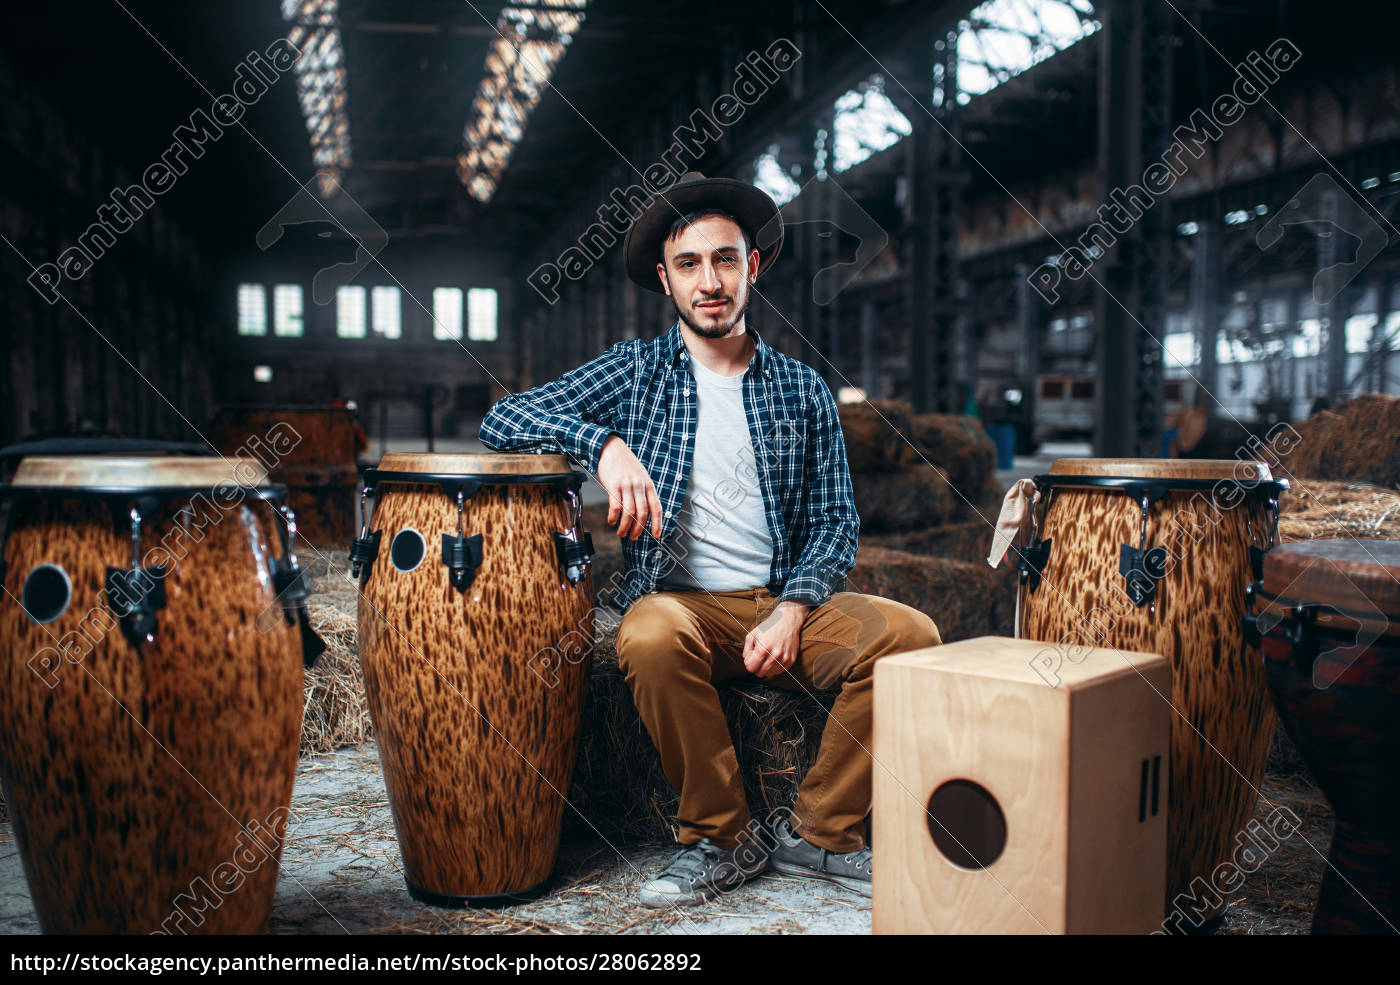 male, drummer, pose, against, african, wooden - 28062892